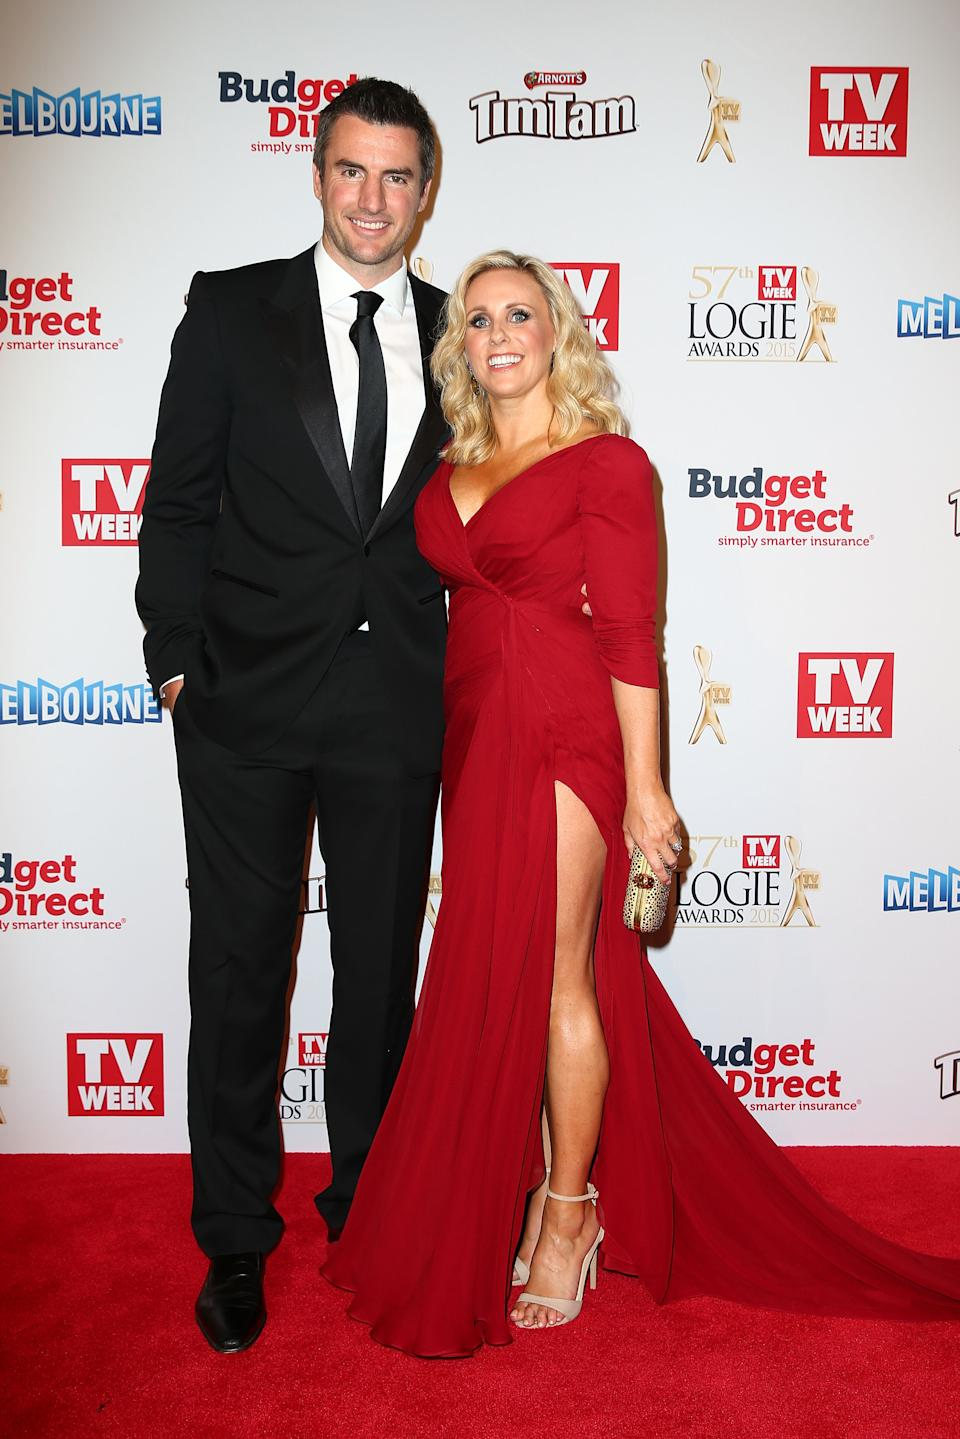 Darren Jolly and Deanne Jolly at the Logies